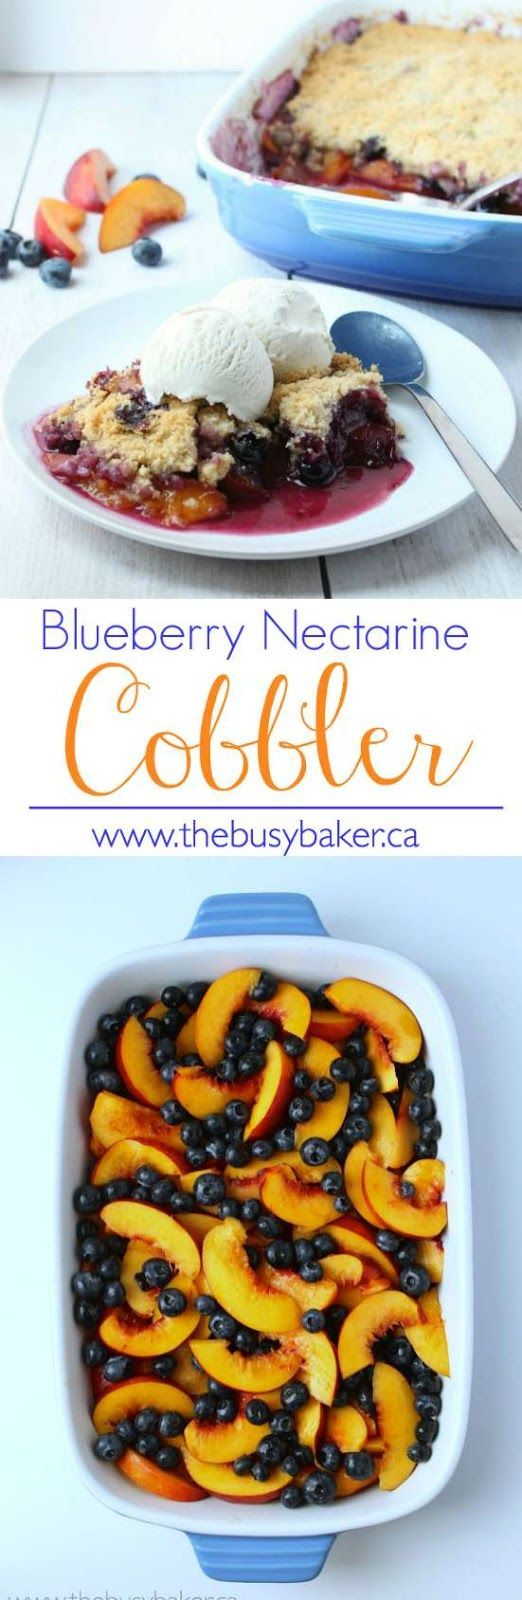 The Busy Baker: Blueberry Nectarine Cobbler